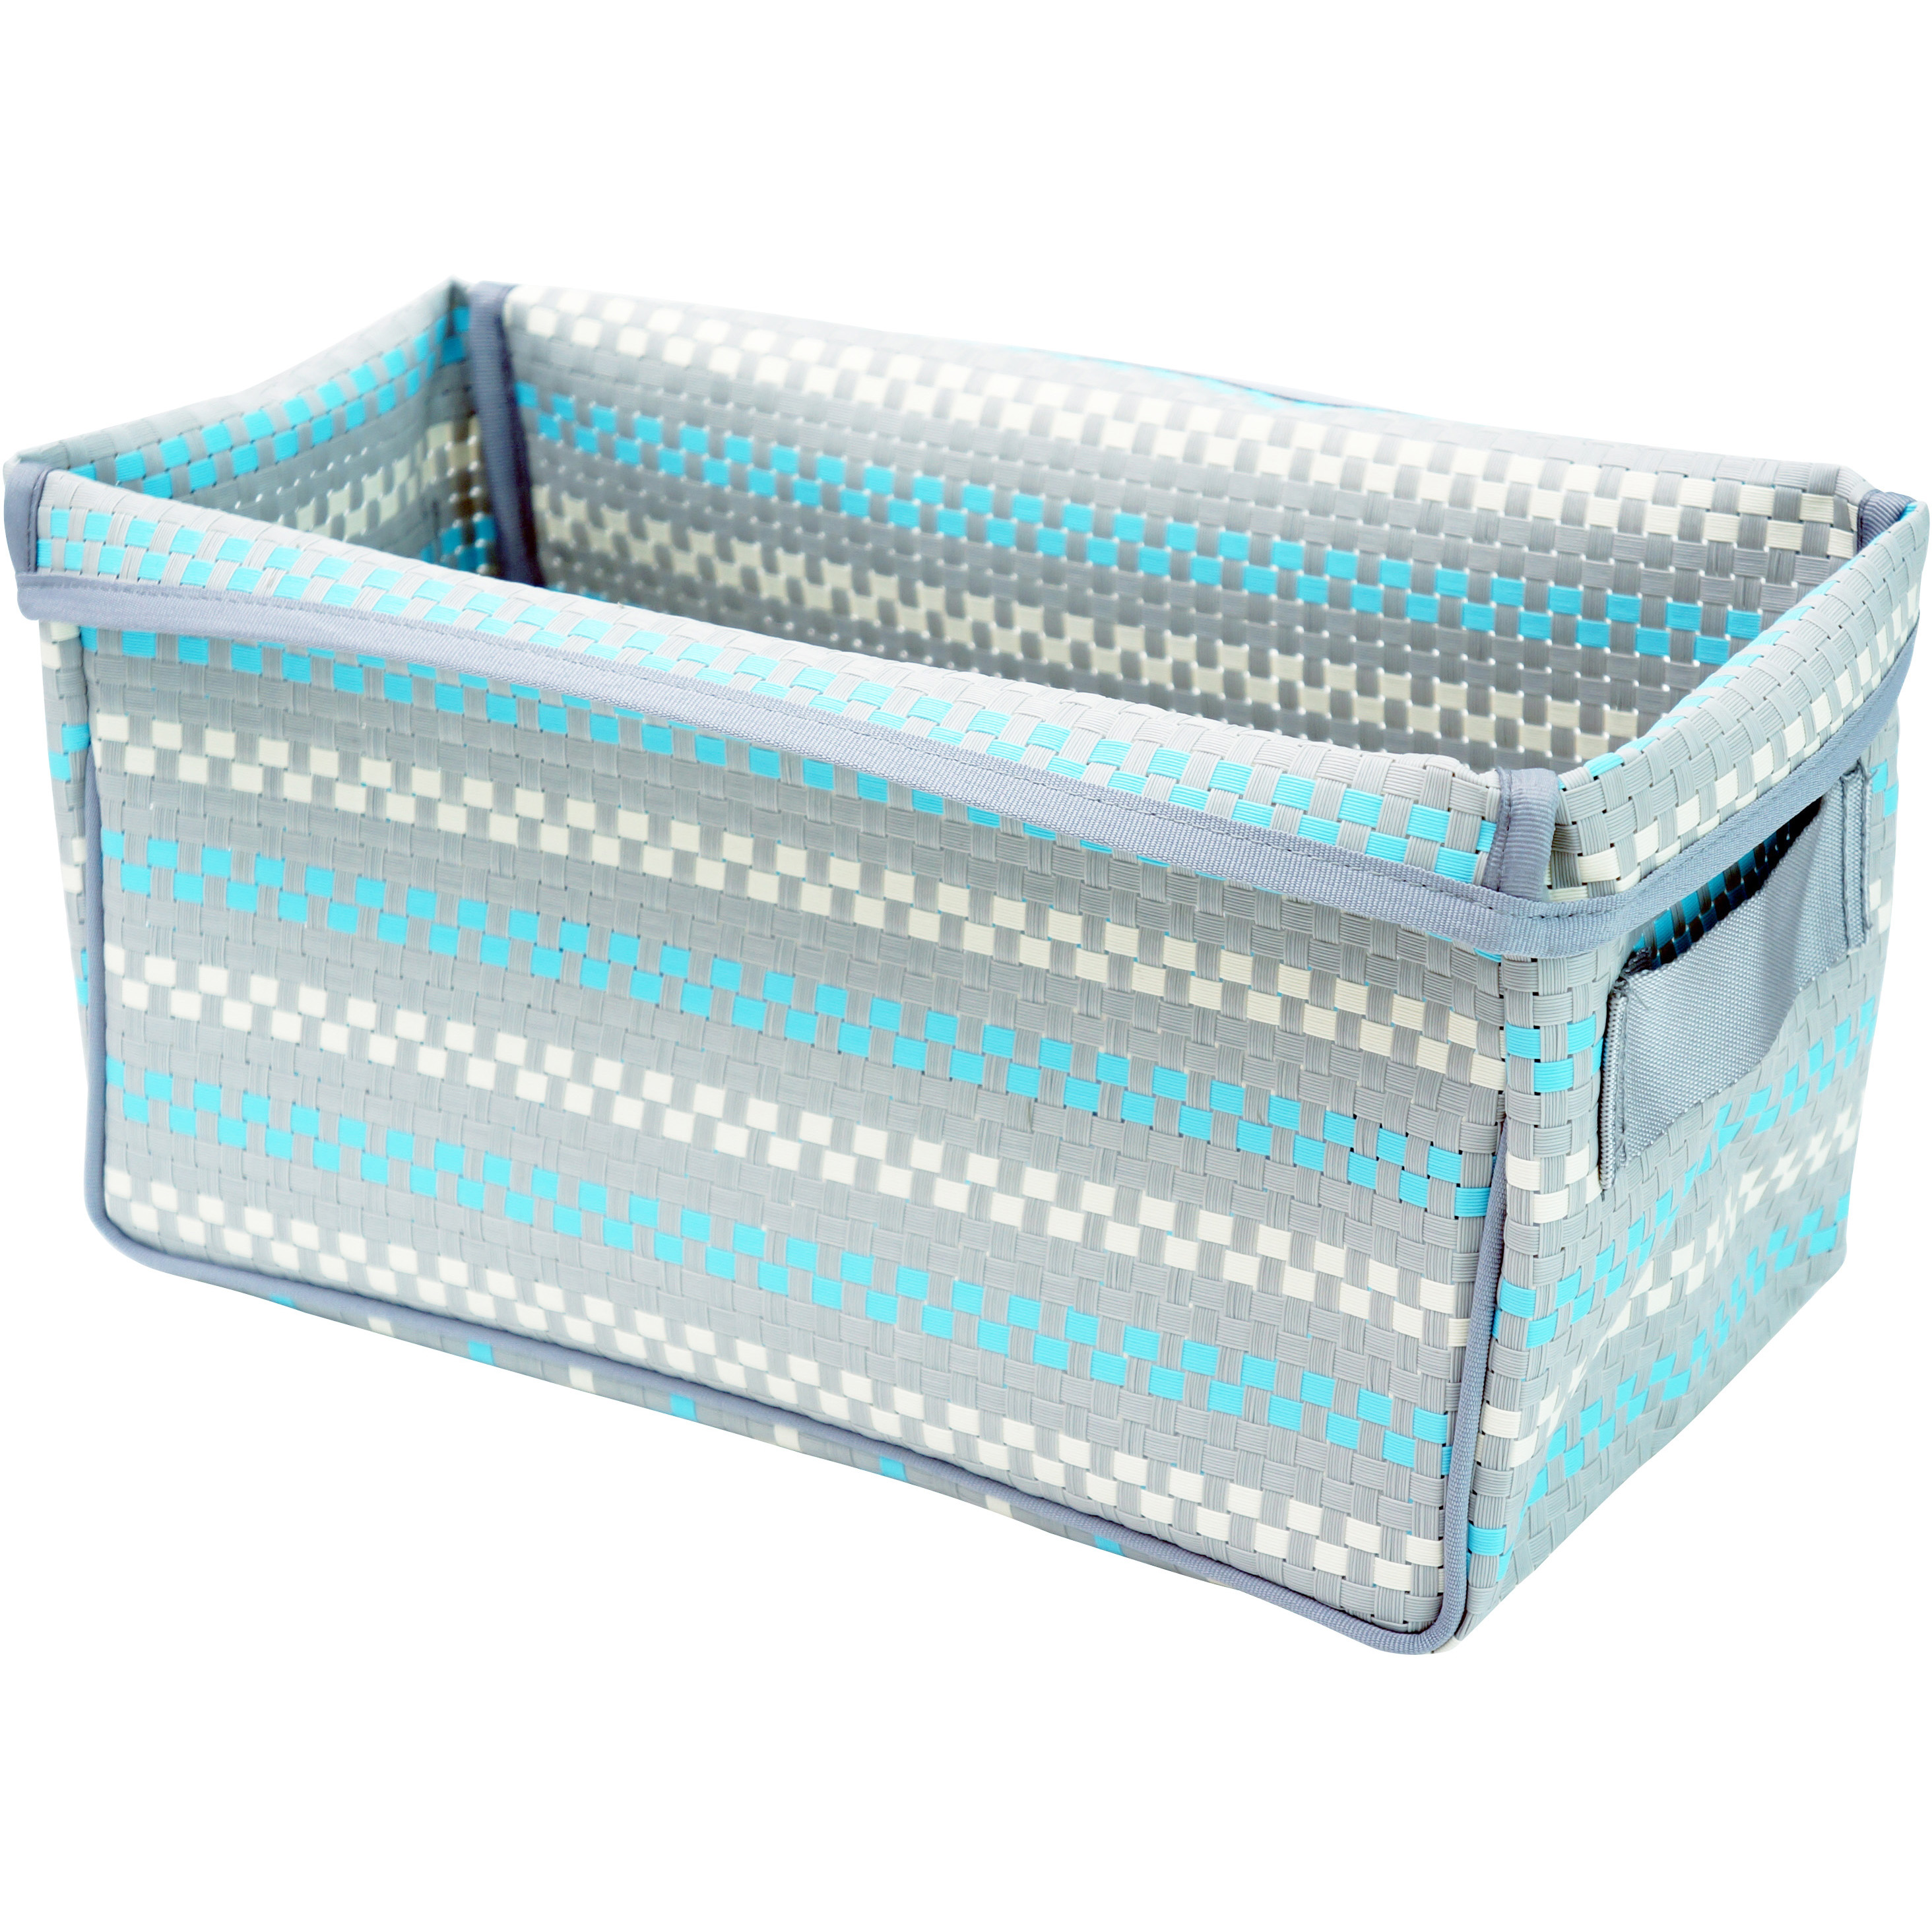 Pivoine Foldable Storage Baskets, 2 Pack, Mosaic Gray and Sky Blue